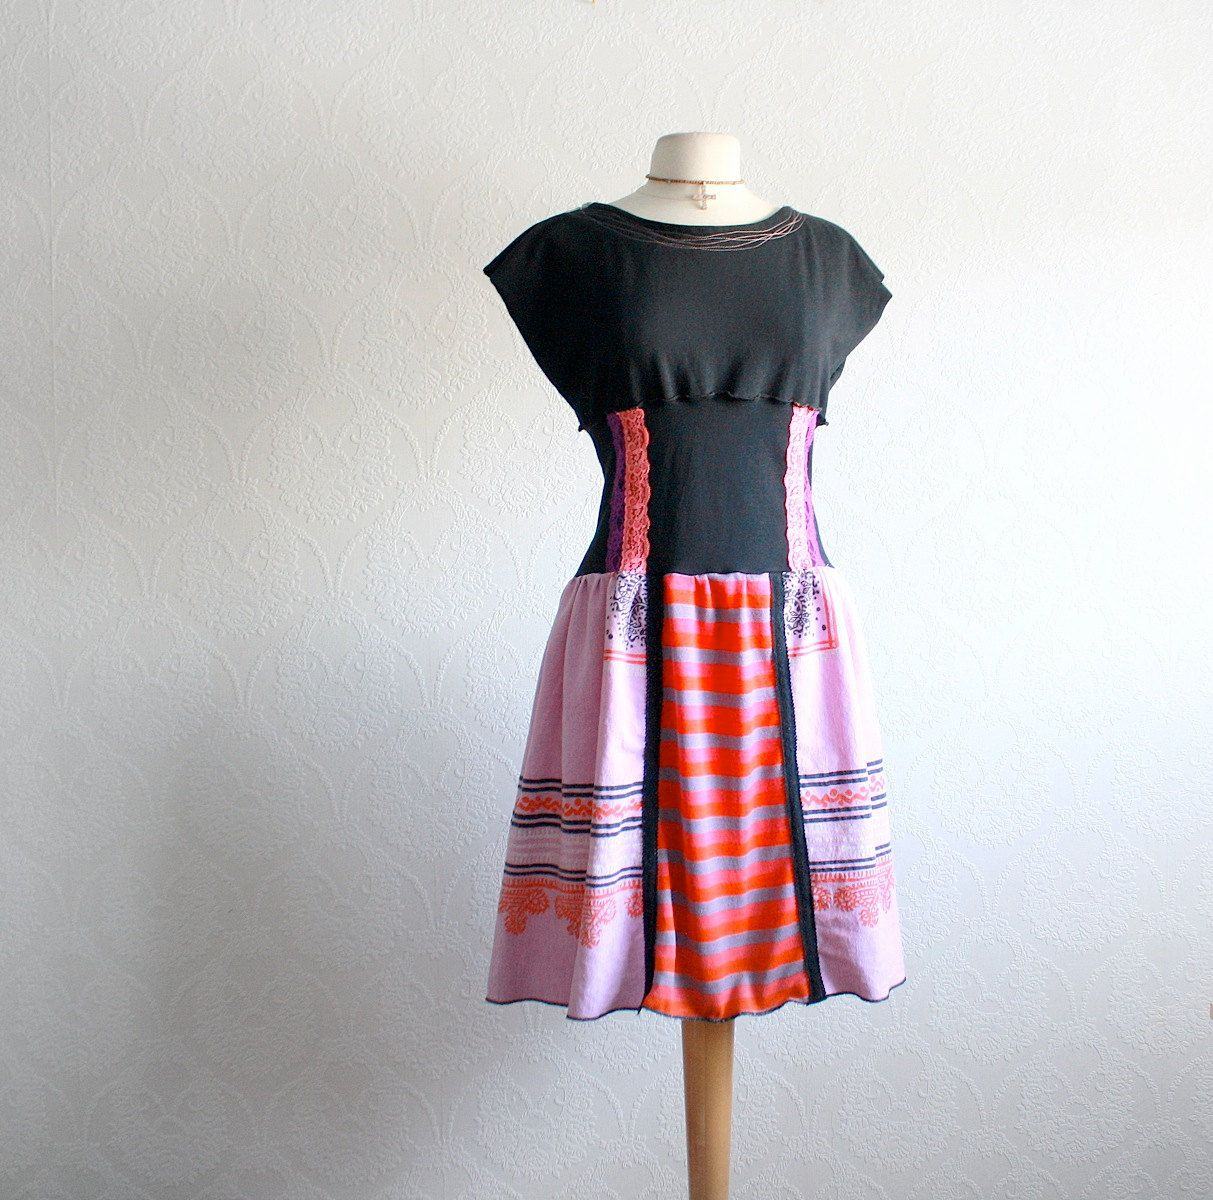 Women's Black Dress Upcycled Clothing Purple Ethnic Print Reconstructed Bohemian Style Ladies Clothes Day Dress Medium 'DION'. $78.00, via Etsy.